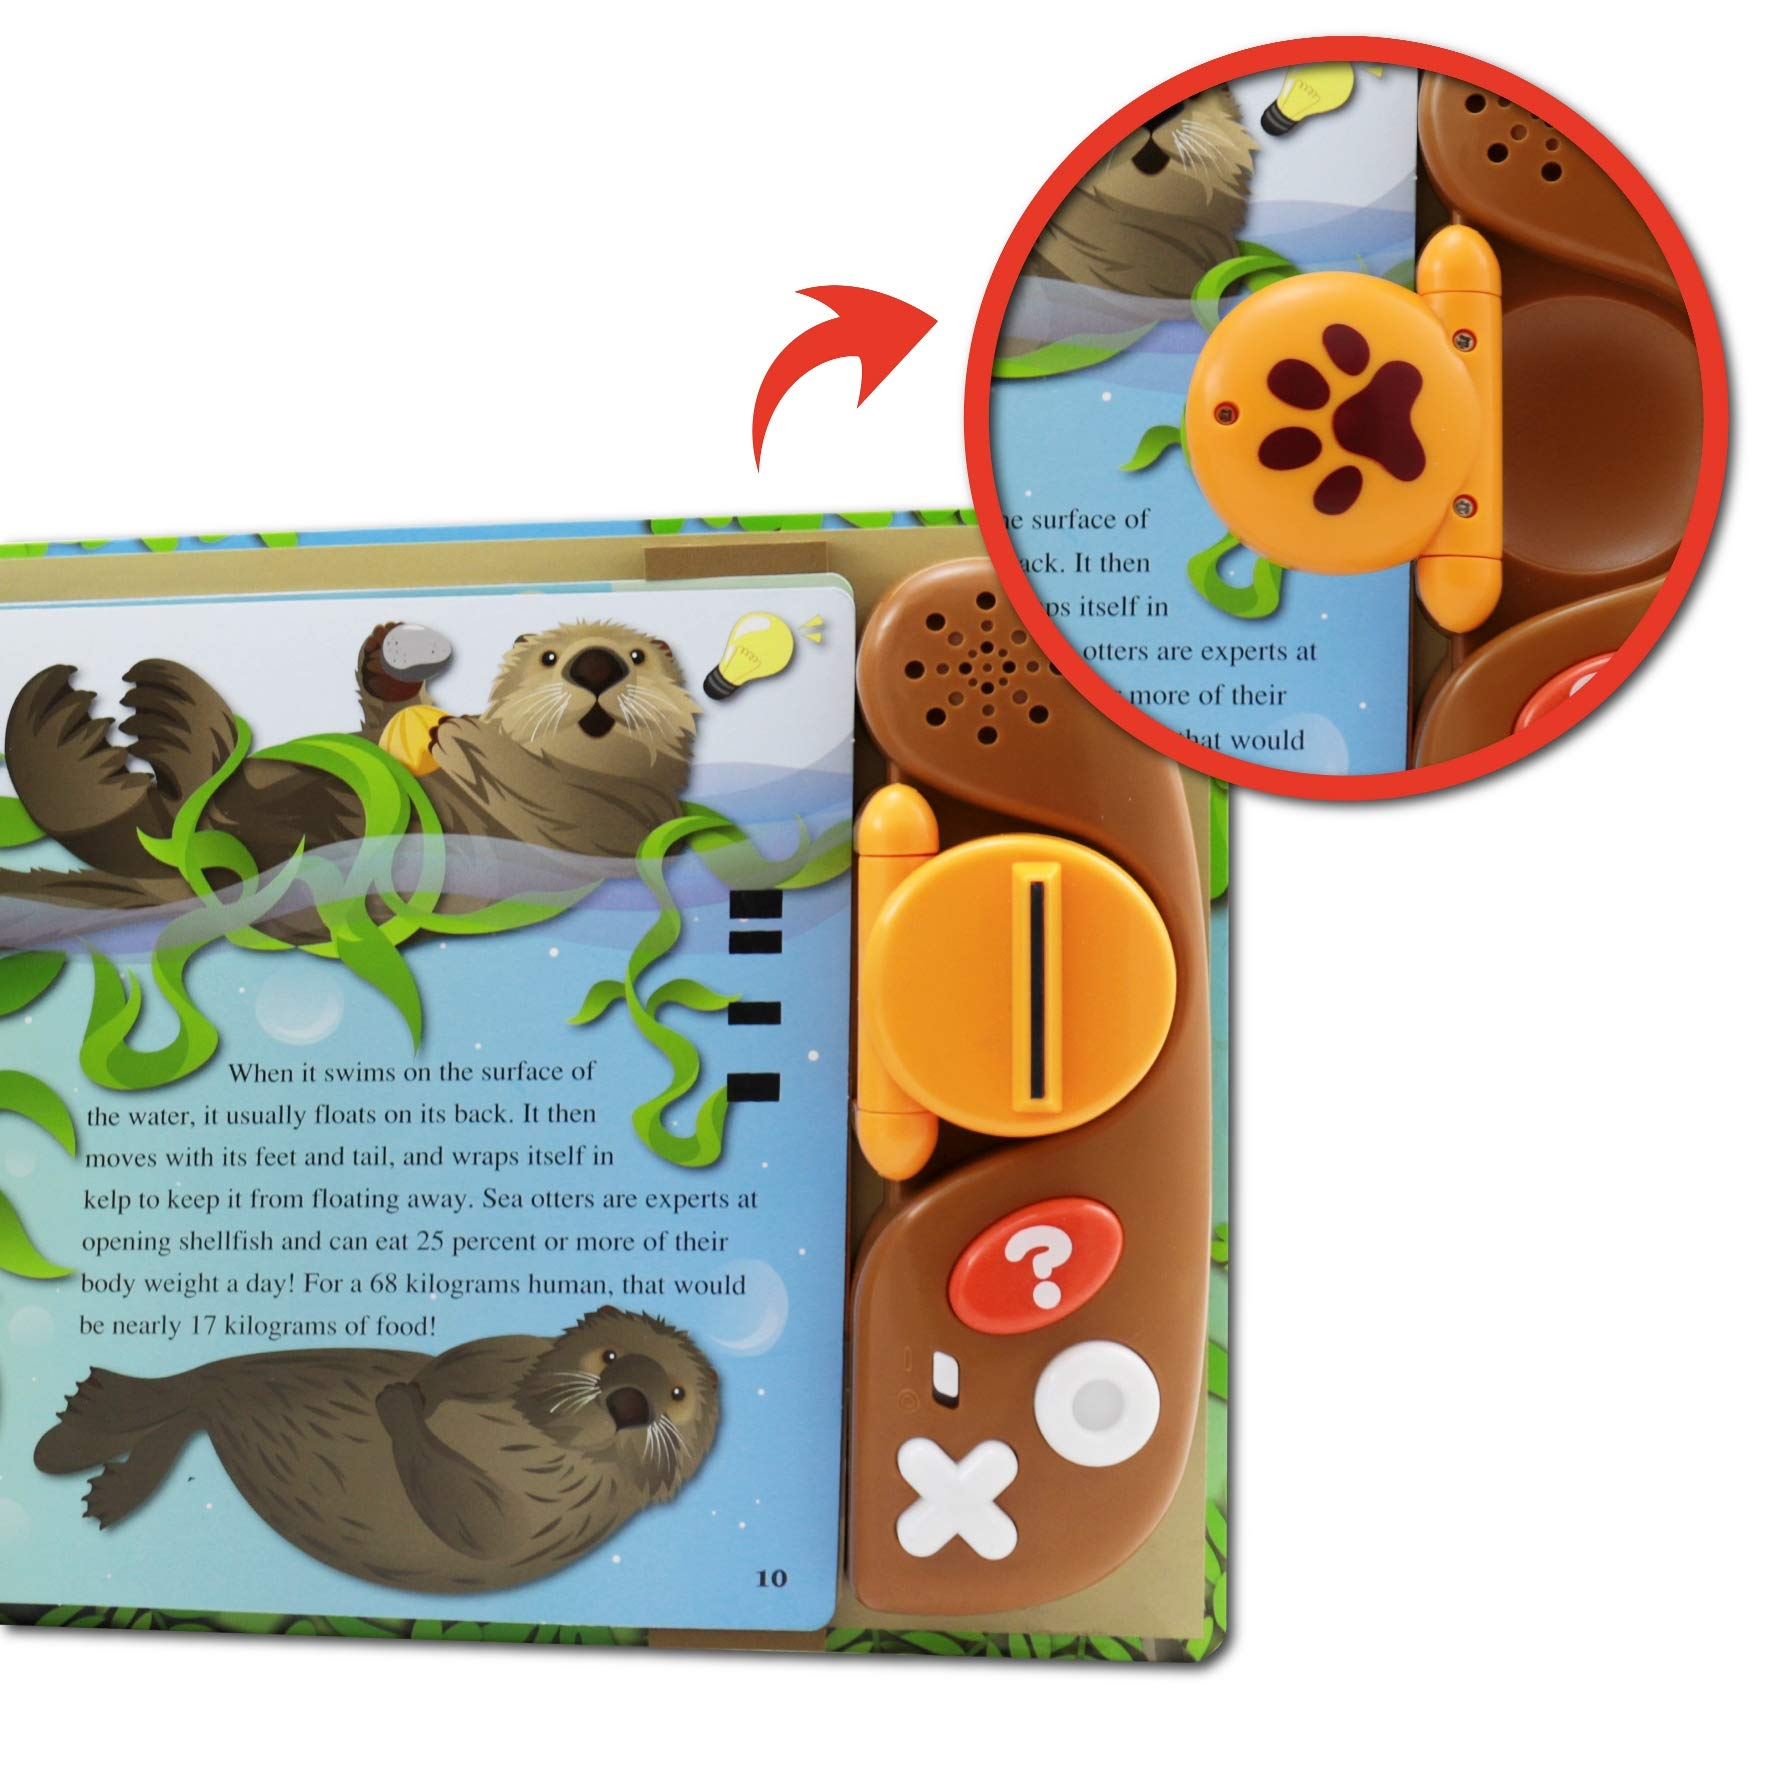 BEST LEARNING Book Reader Animal Kingdom - Educational Talking Sound Toy to Learn About Animals with Quiz Games for Kids Ages 3 to 8 Years Old by BEST LEARNING (Image #5)